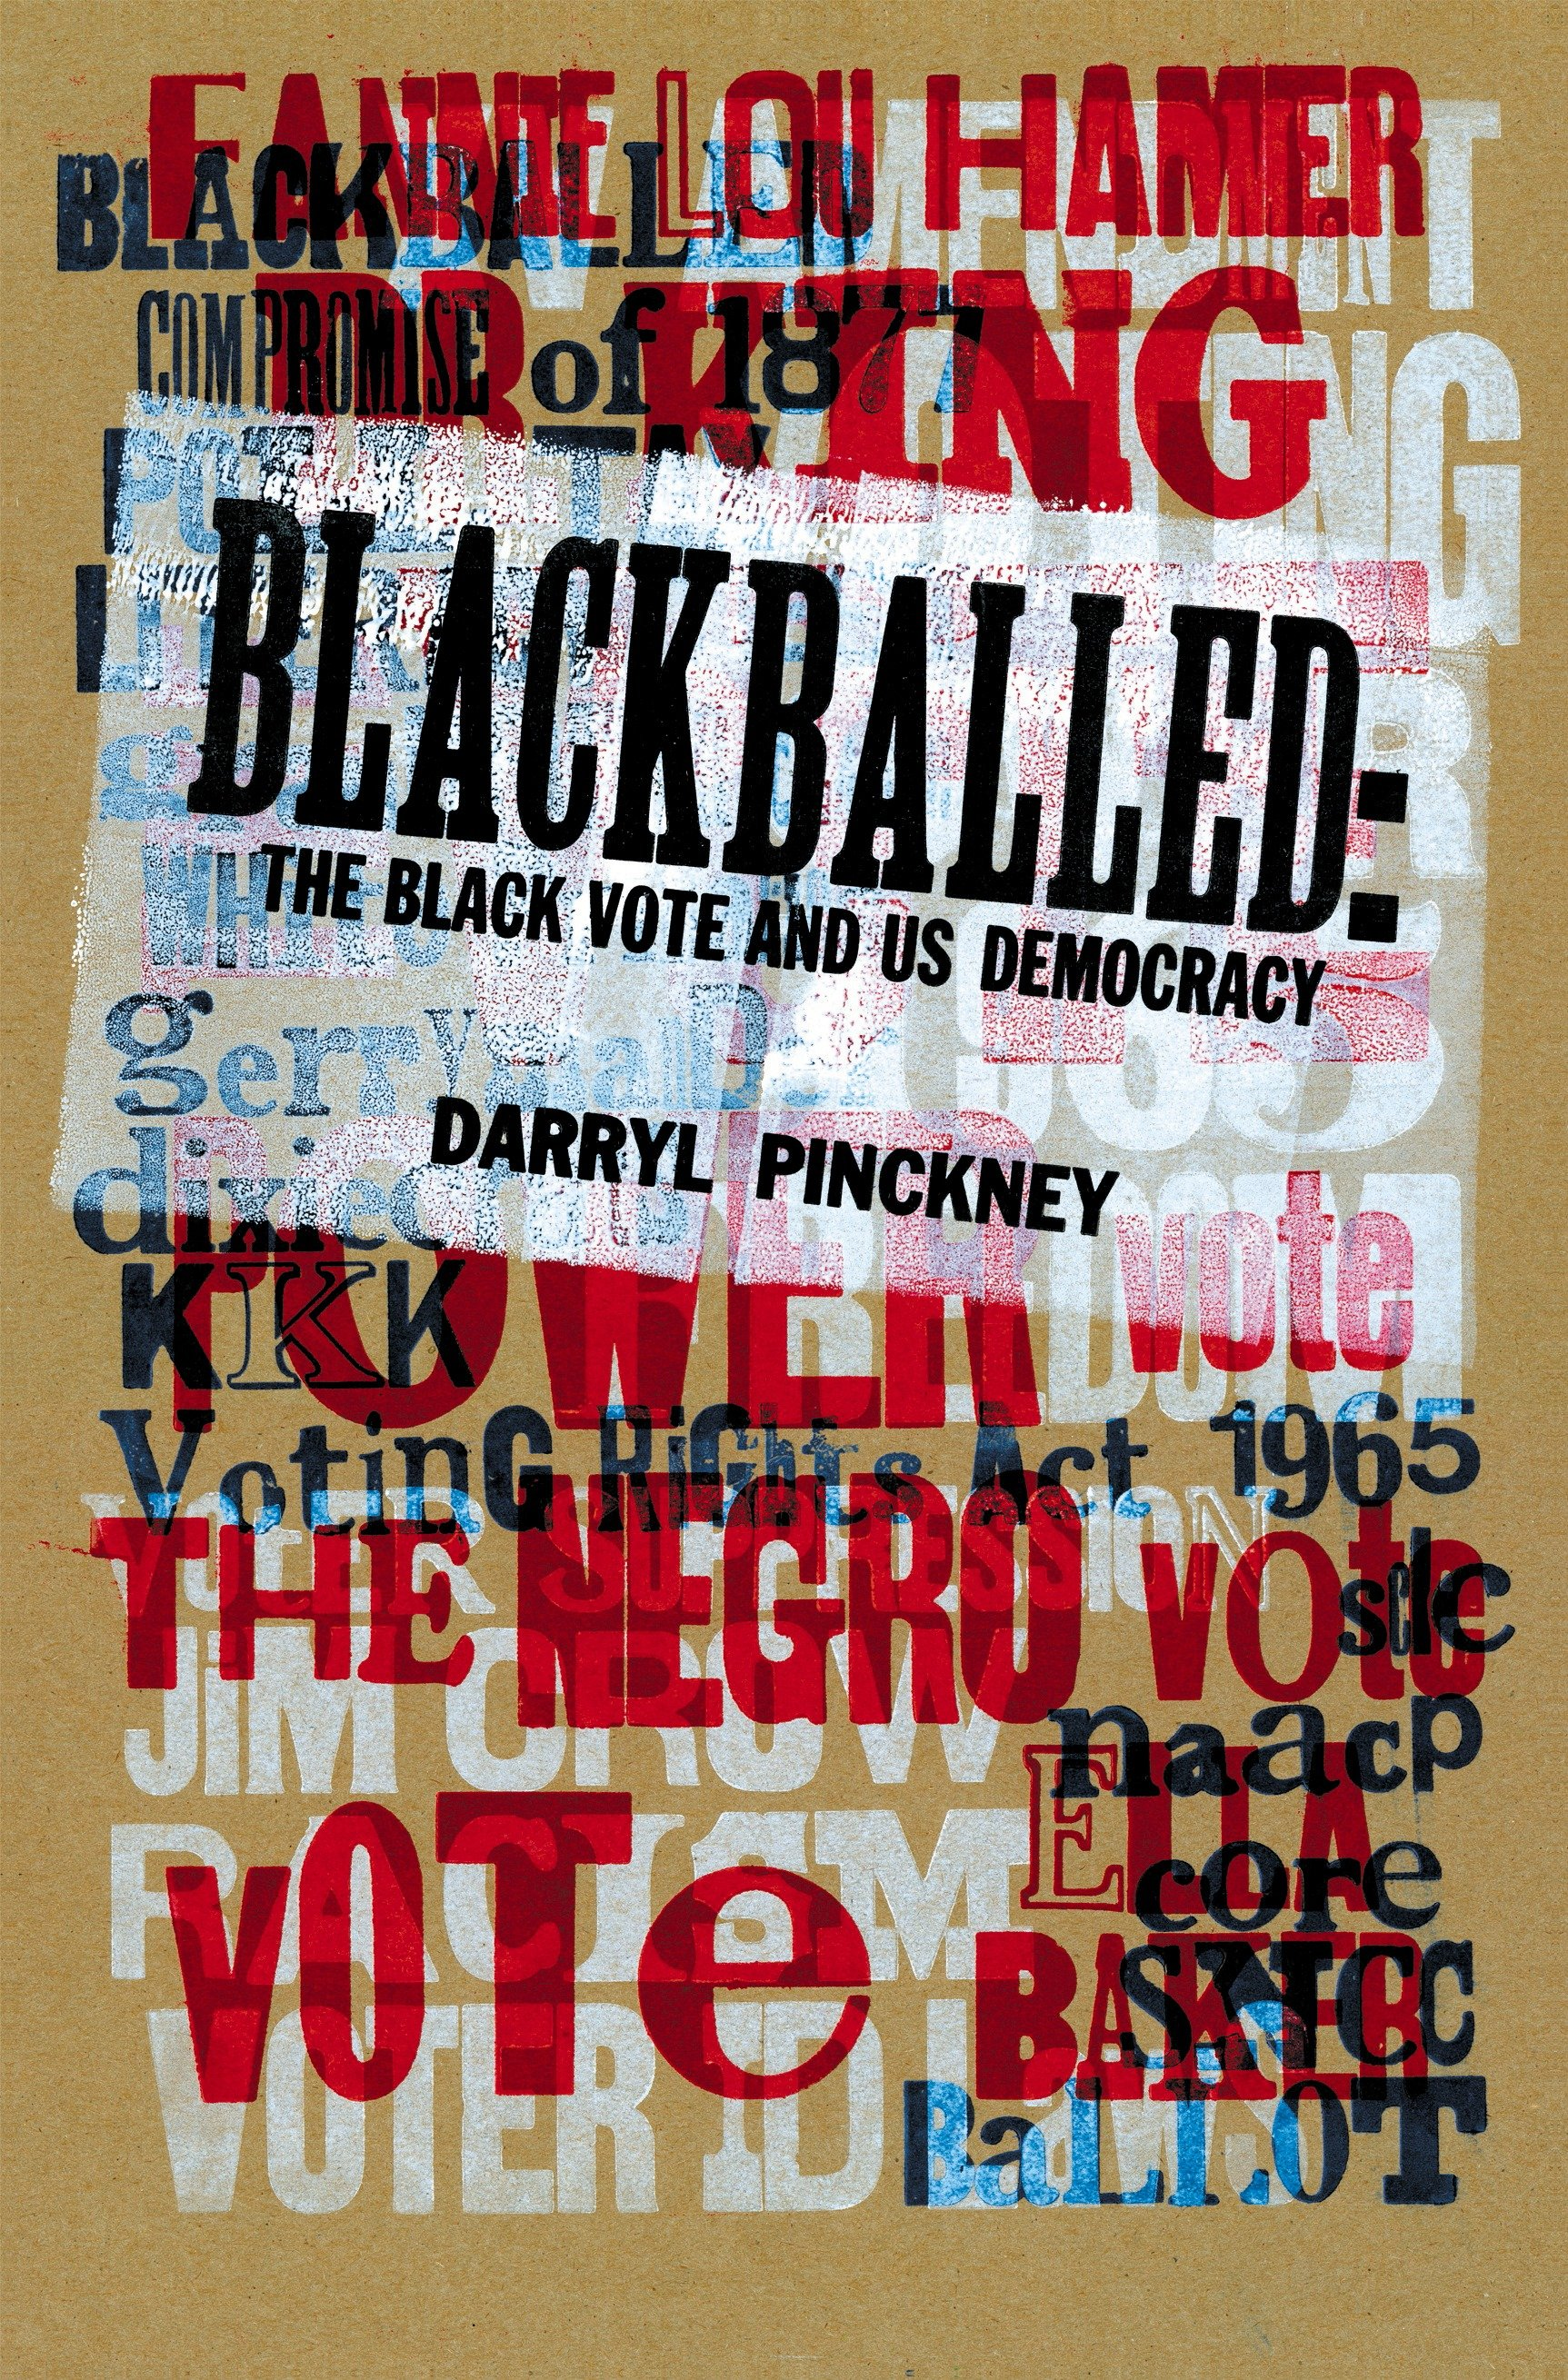 Blackballed [electronic resource (downloadable eBook)] : the Black Vote and US Democracy